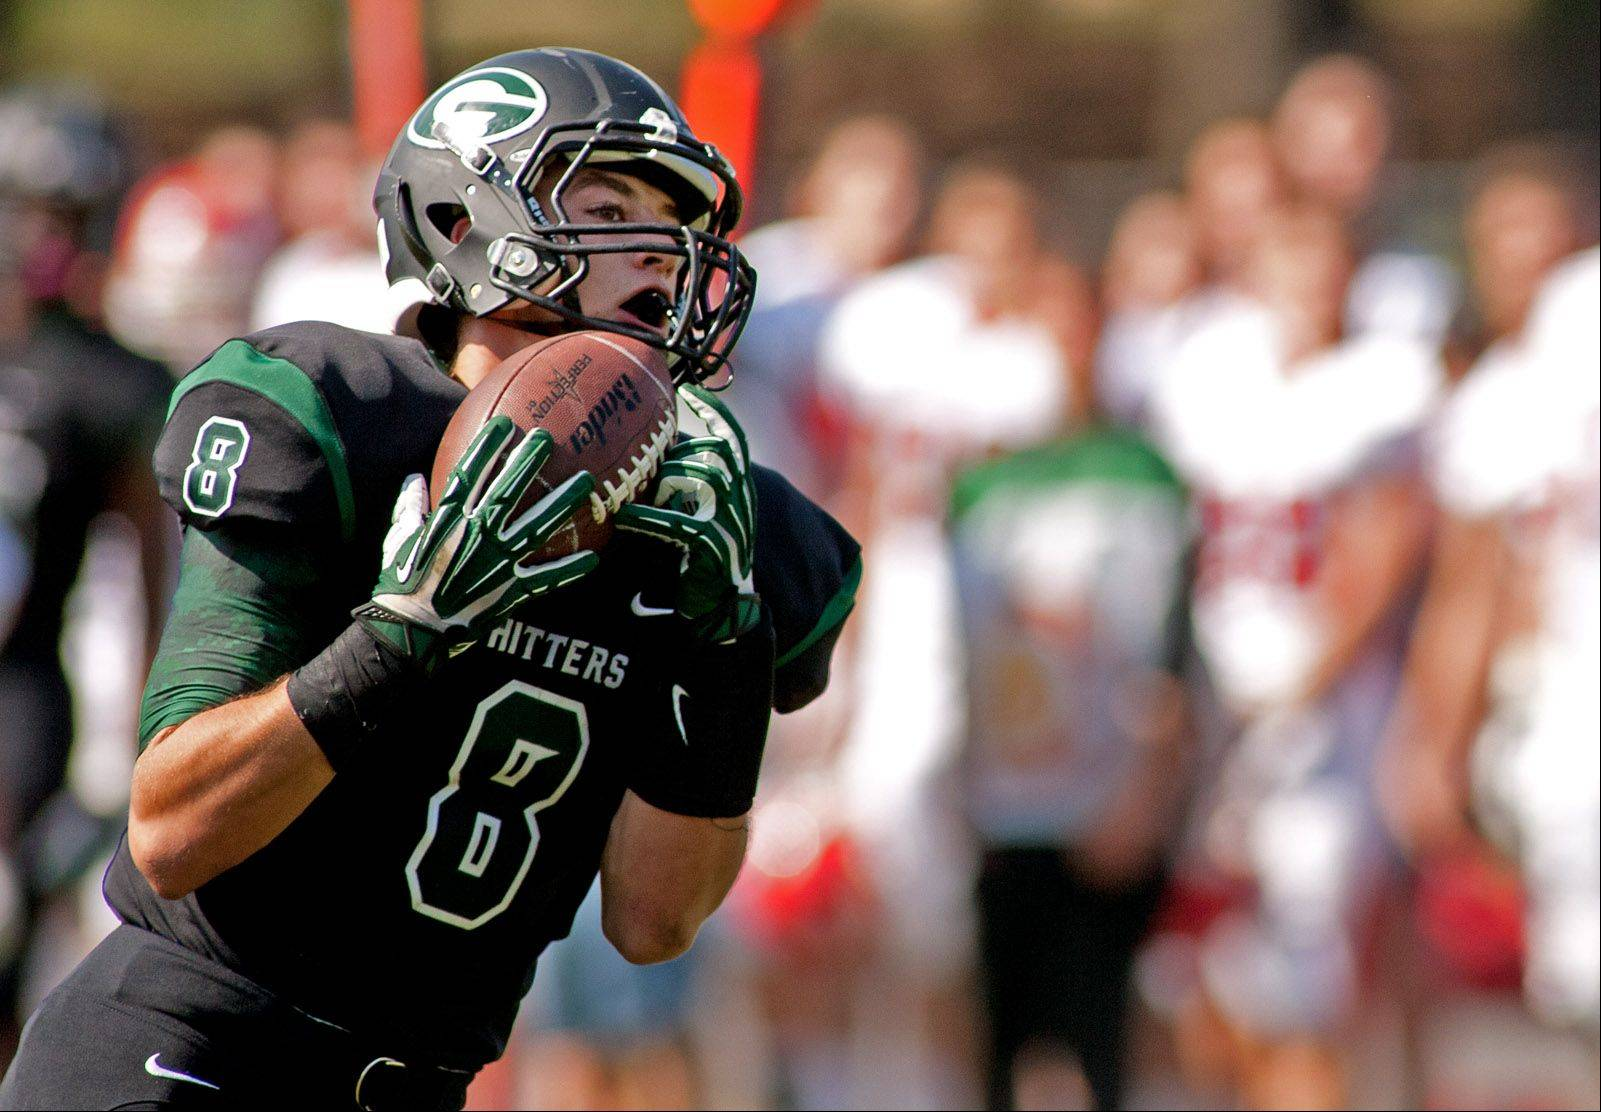 Glenbard West's Hayden Carlson catches a first half touchdown pass against Hinsdale Central.